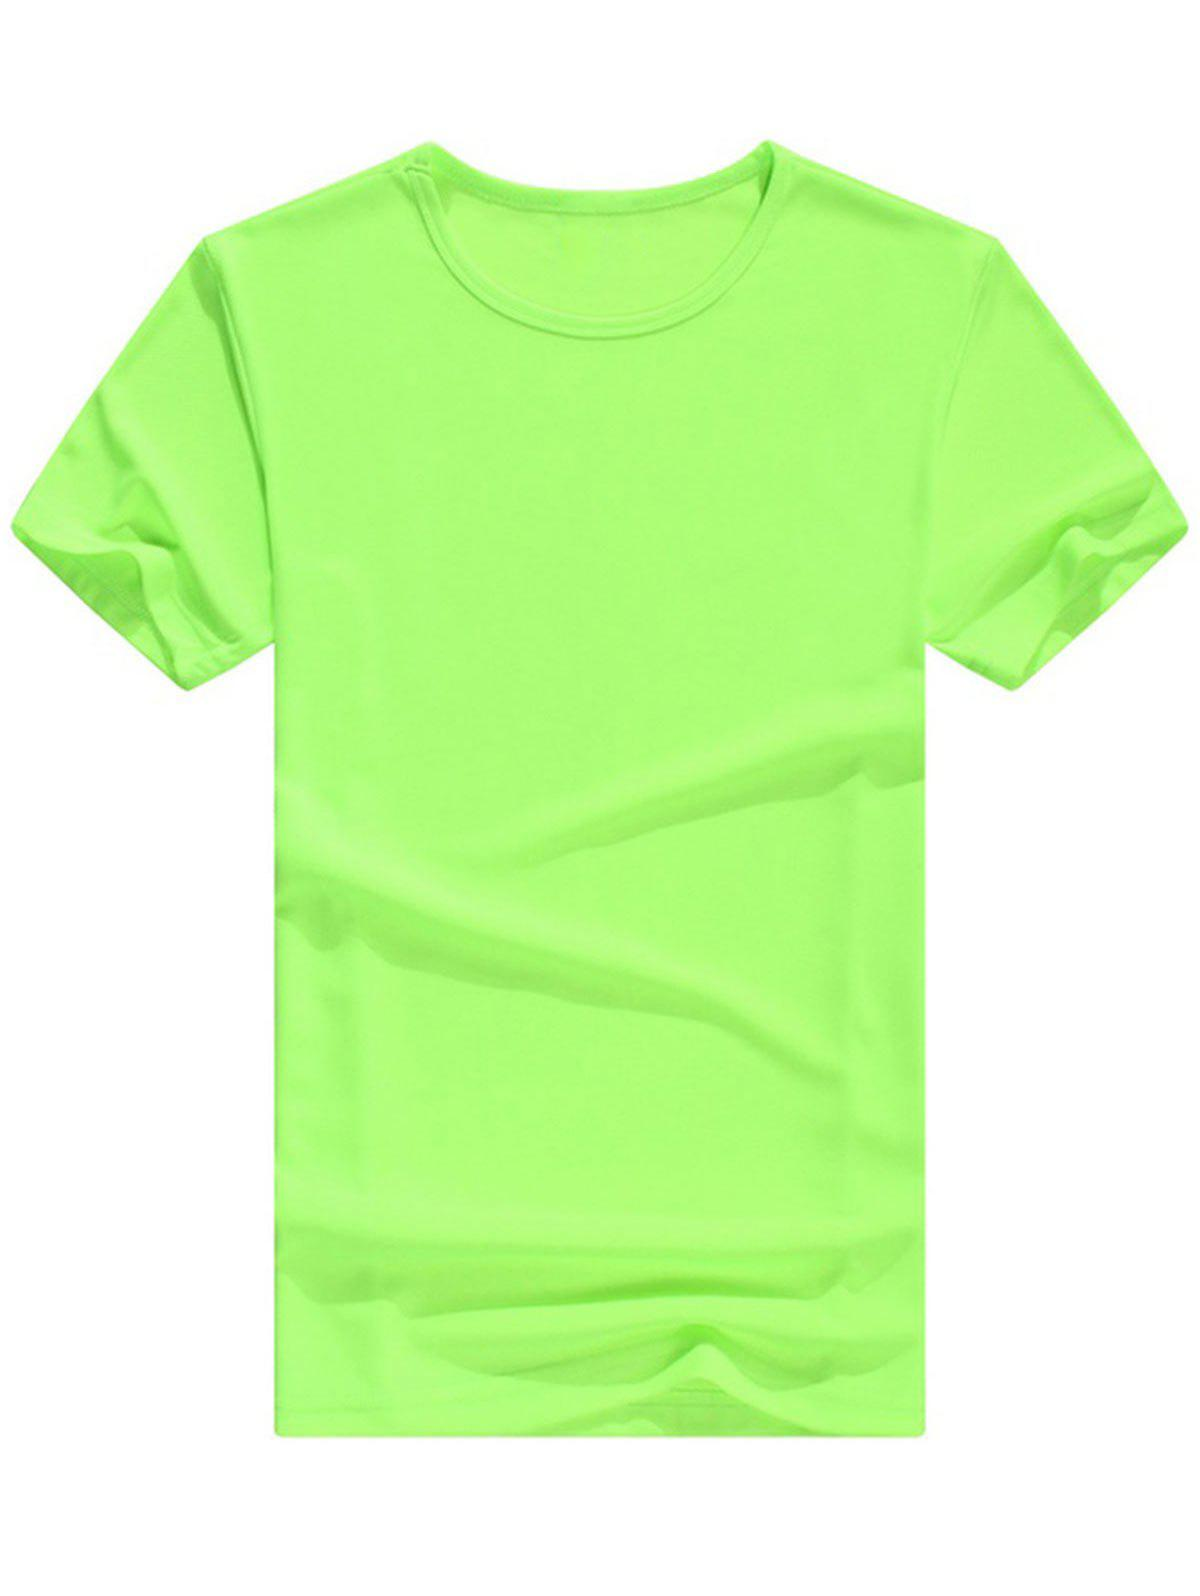 Affordable Crew Neck Basic Short Sleeve T-Shirt